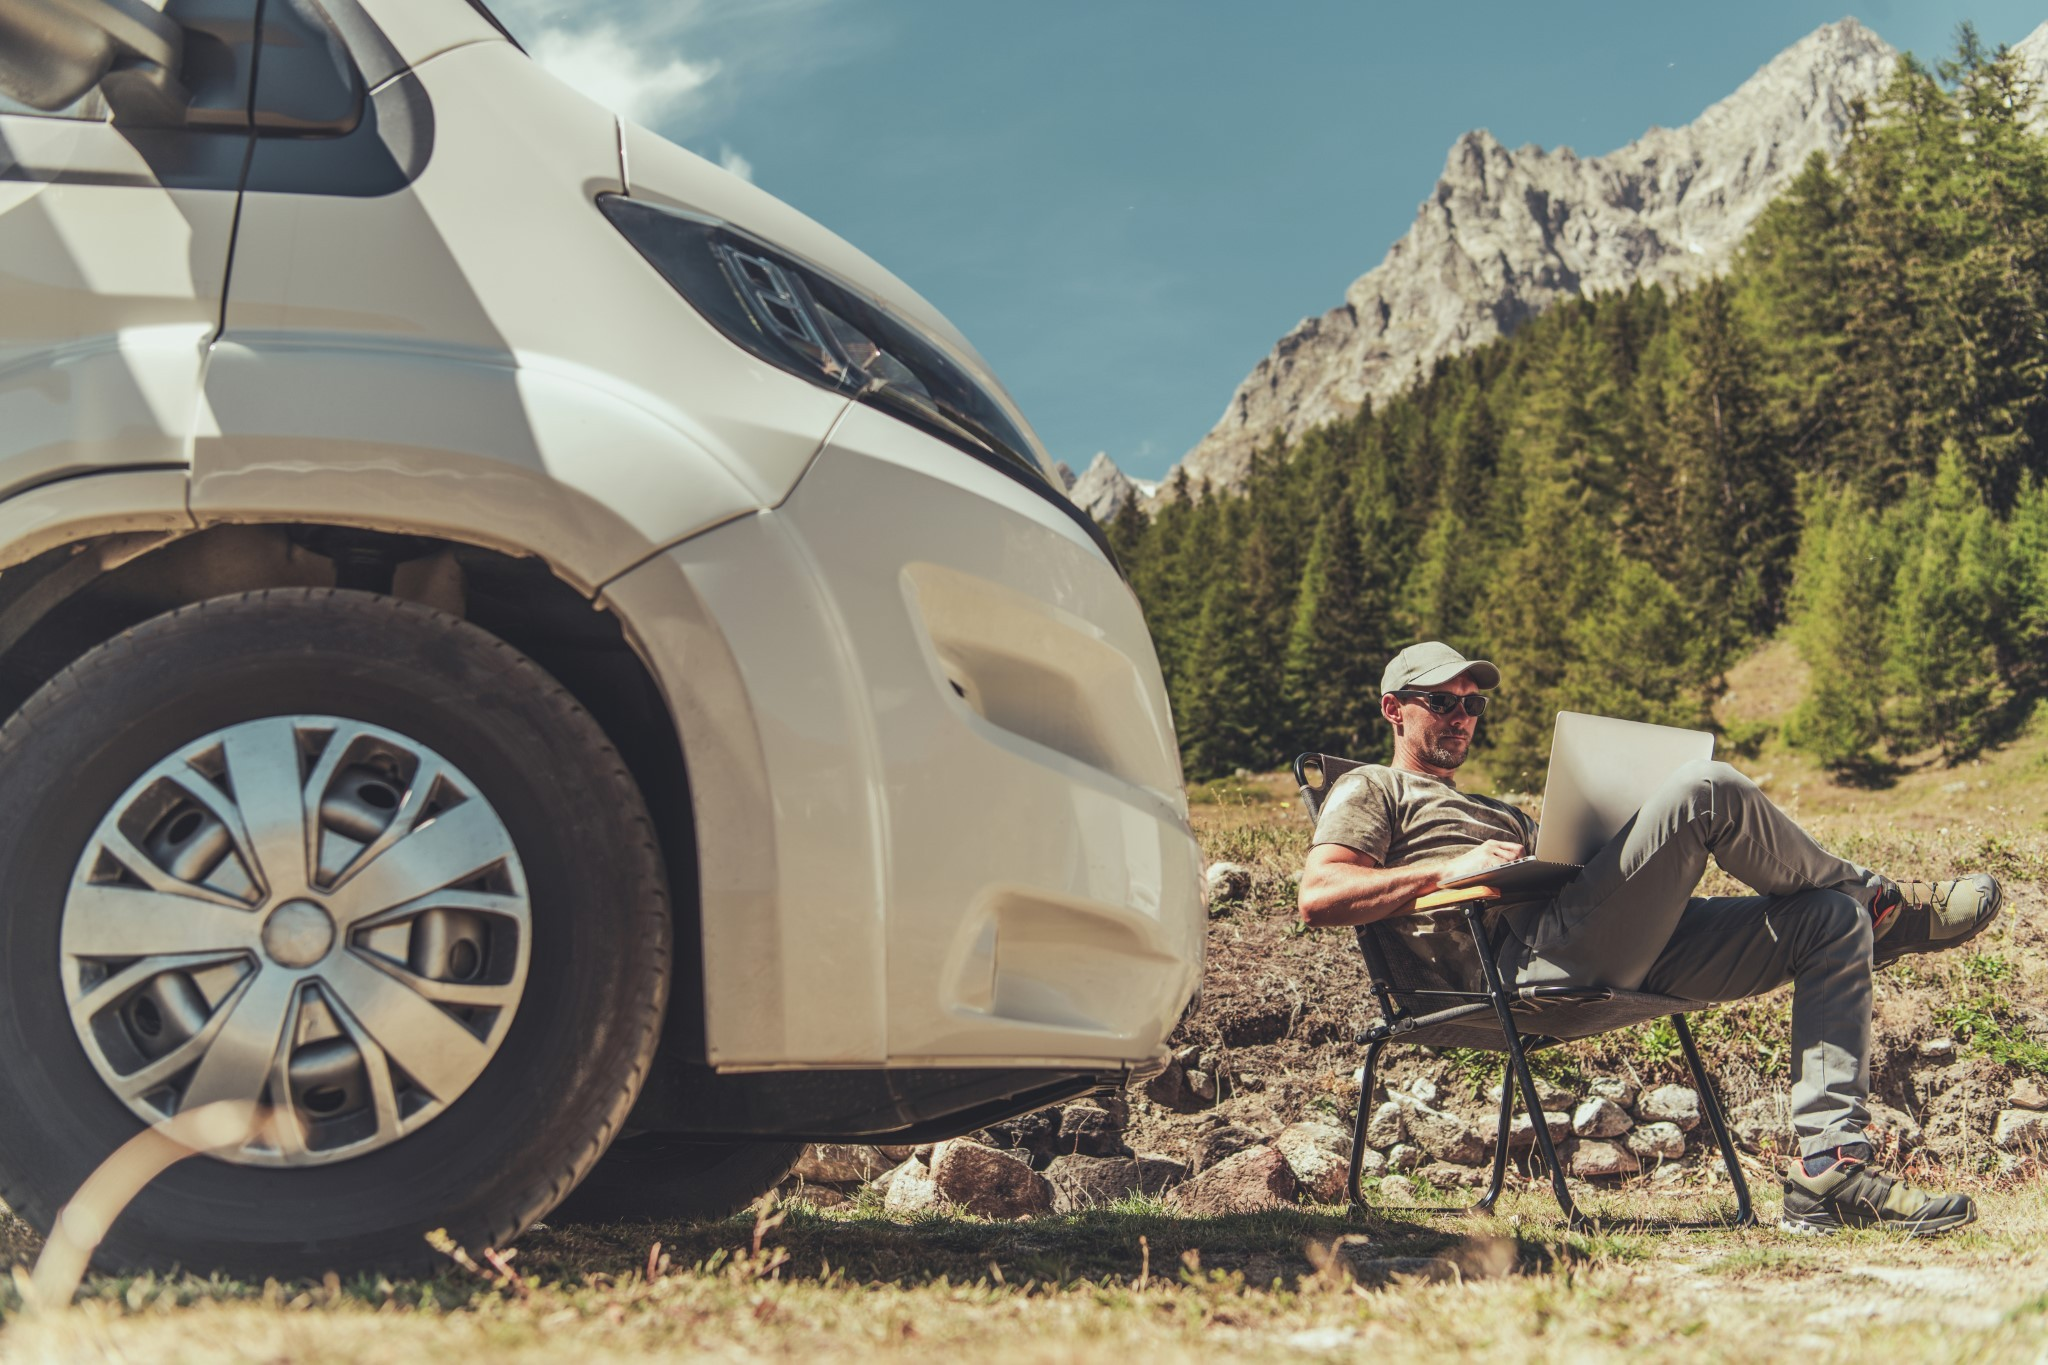 Caucasian Men with Modern Laptop Computer in His Hands Working Remotely While Camping in RV Camper Van Motorhome. High Mountains Landscape in a Background. Work and Travel Theme.